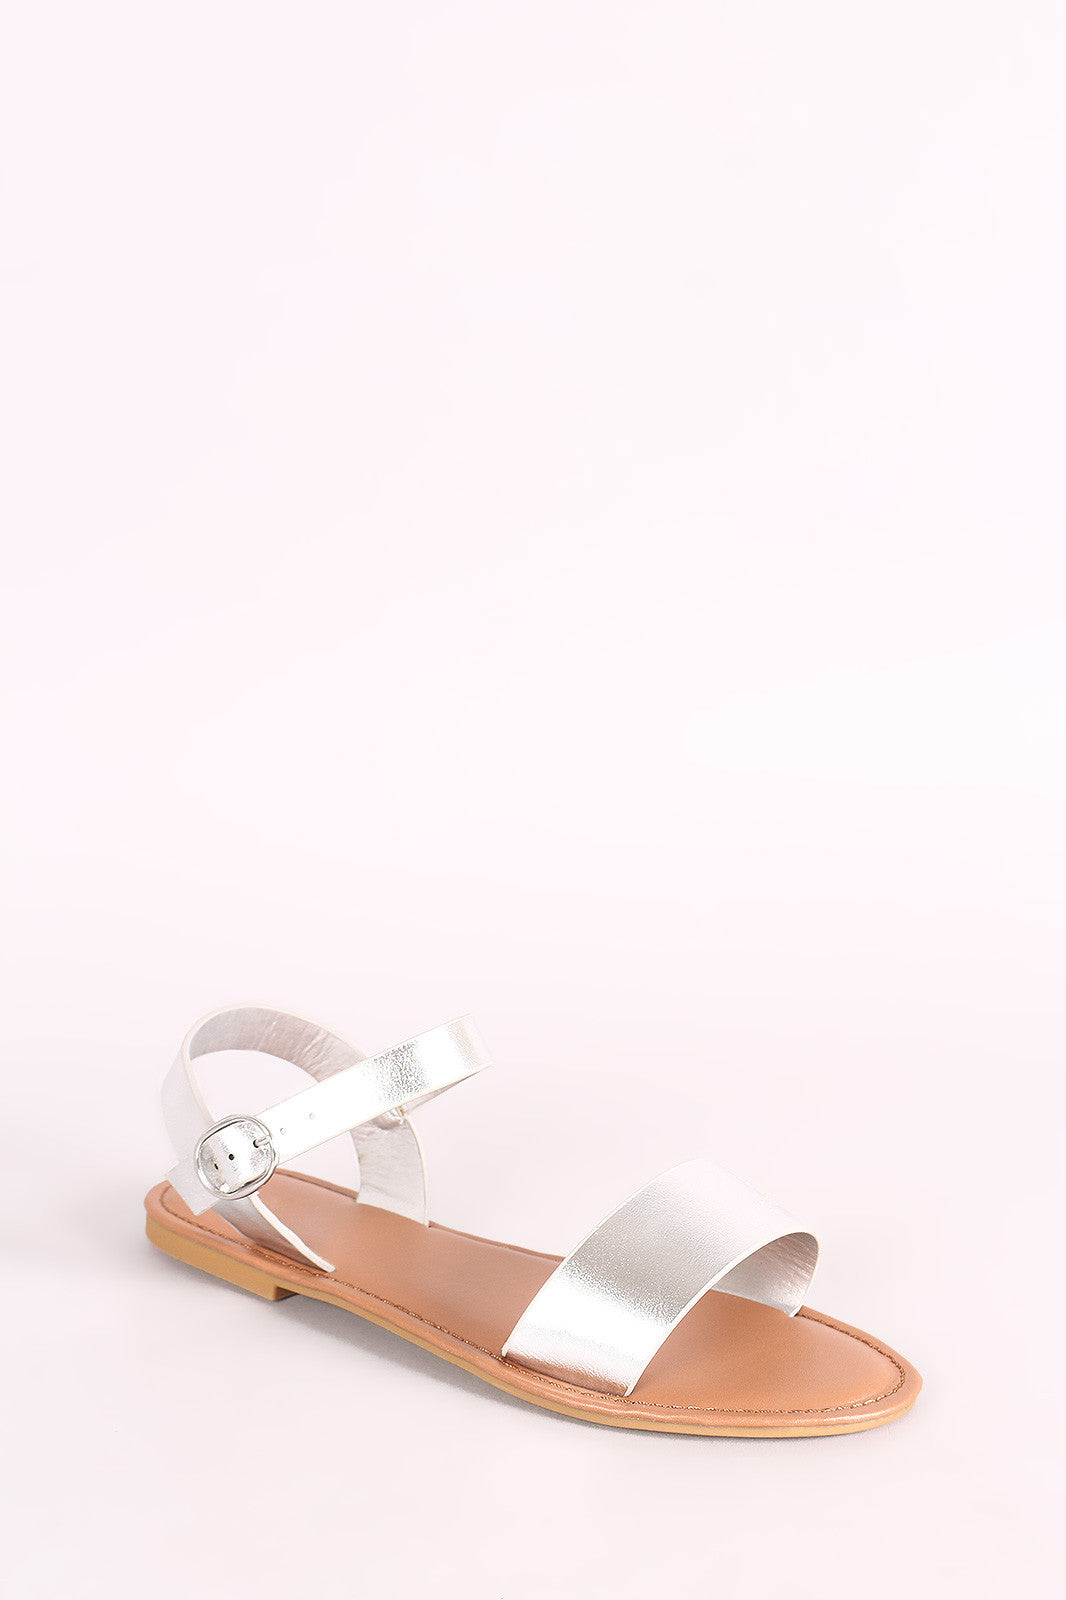 46be65d38ca Bamboo One Band Ankle Strap Flat Sandal